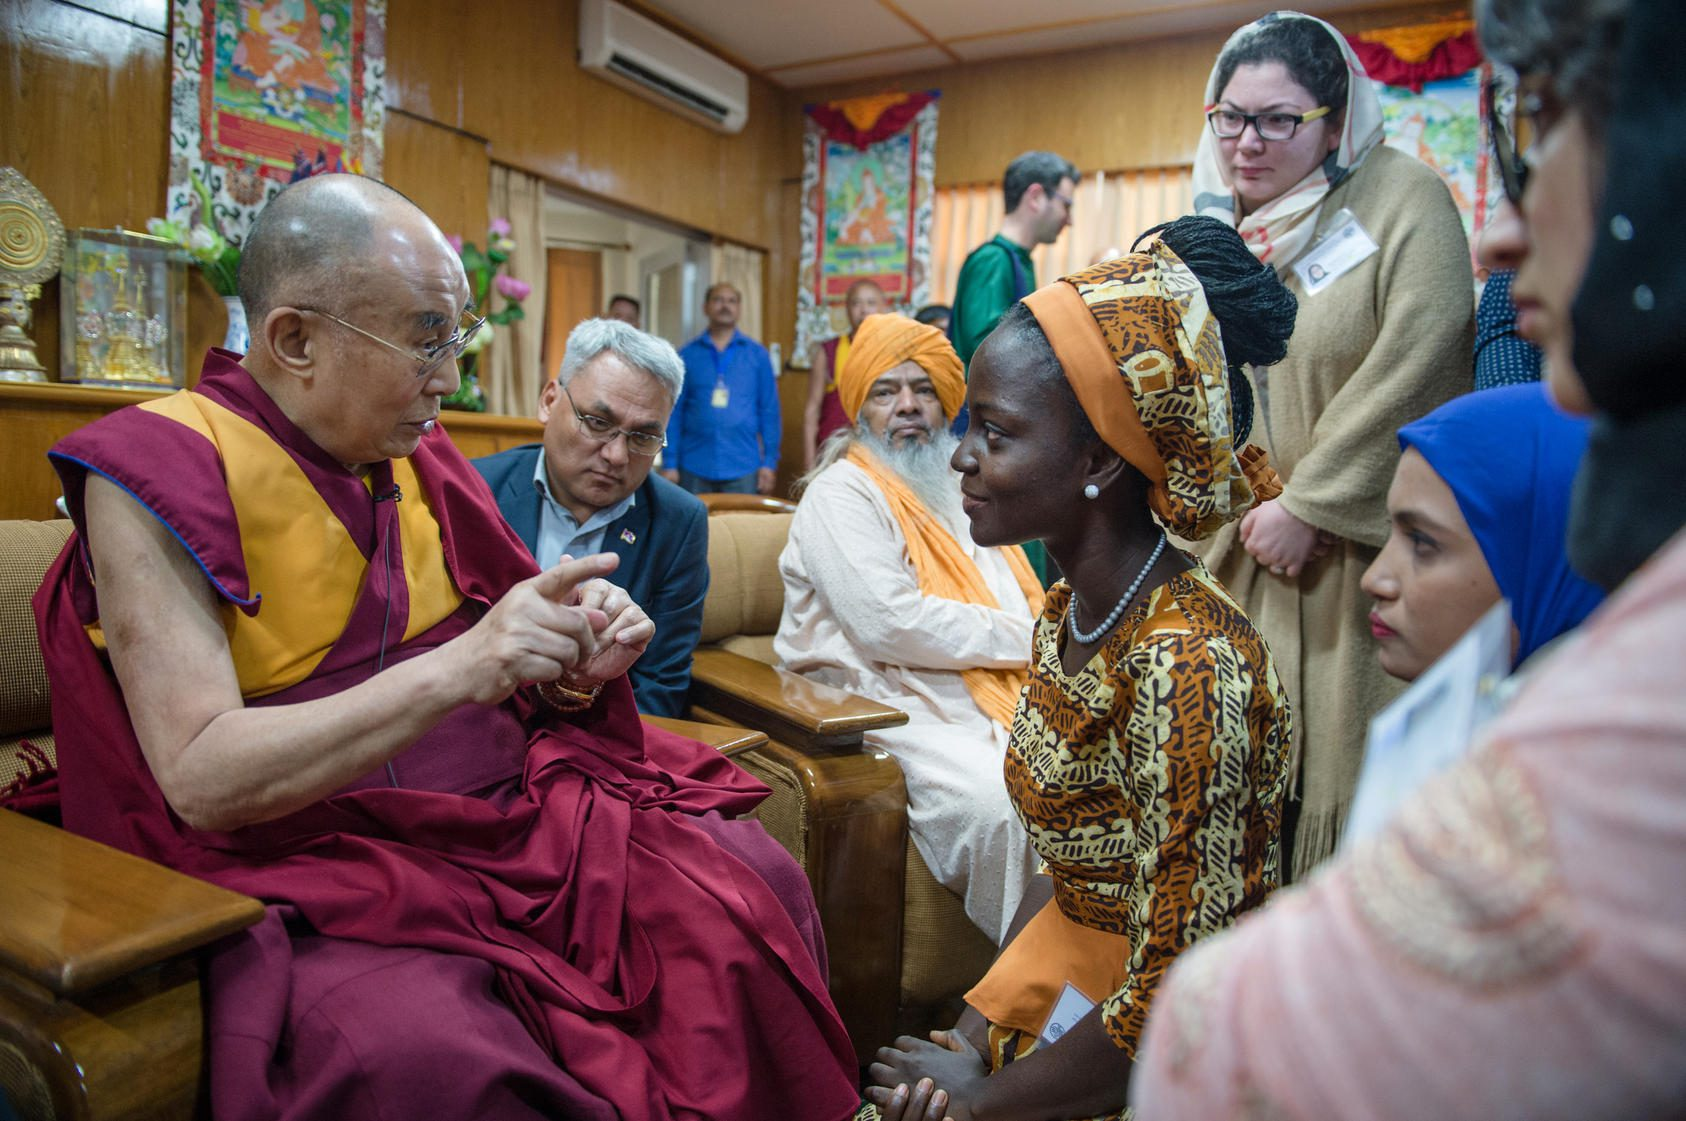 2018 USIP Youth Leaders Exchange With His Holiness The Dalai Lama